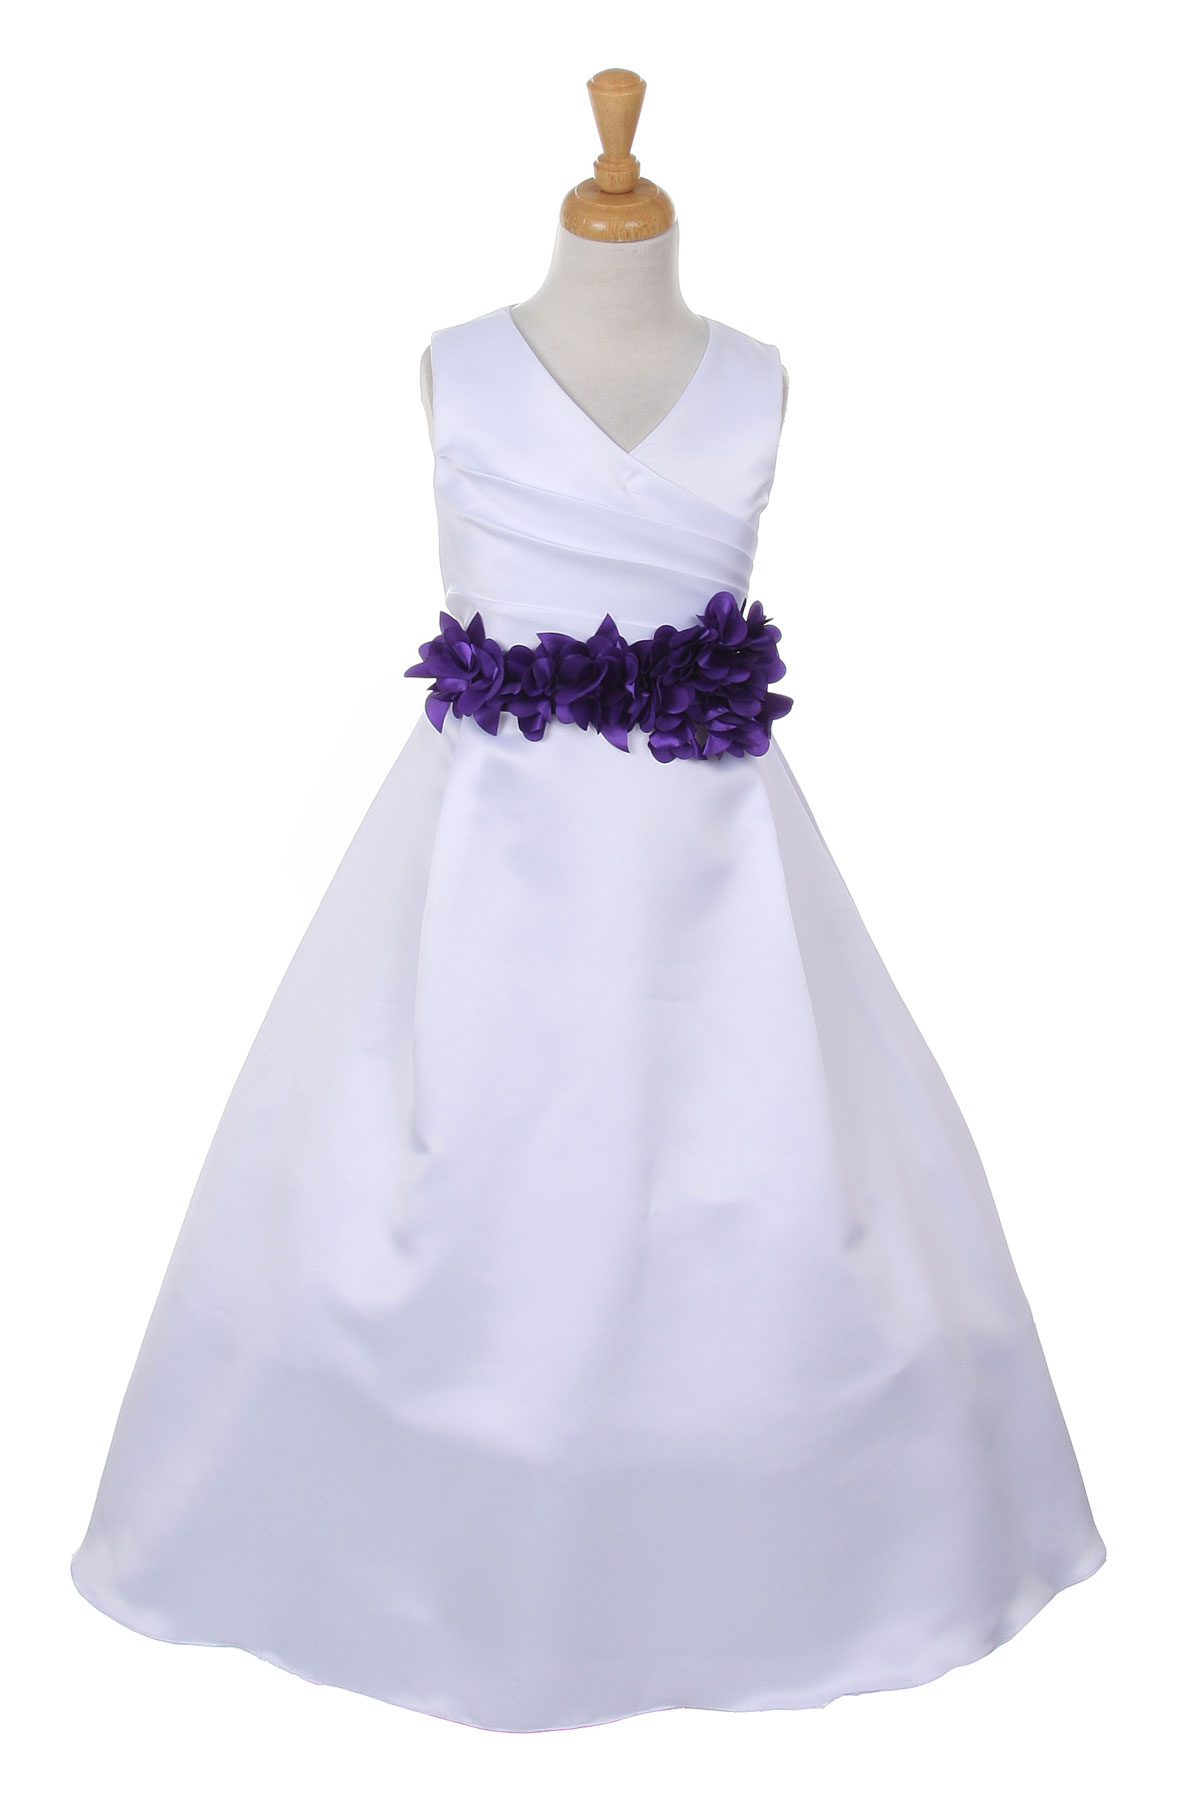 1faea91c7 Flower Girl Dresses Ivory And Purple | Saddha